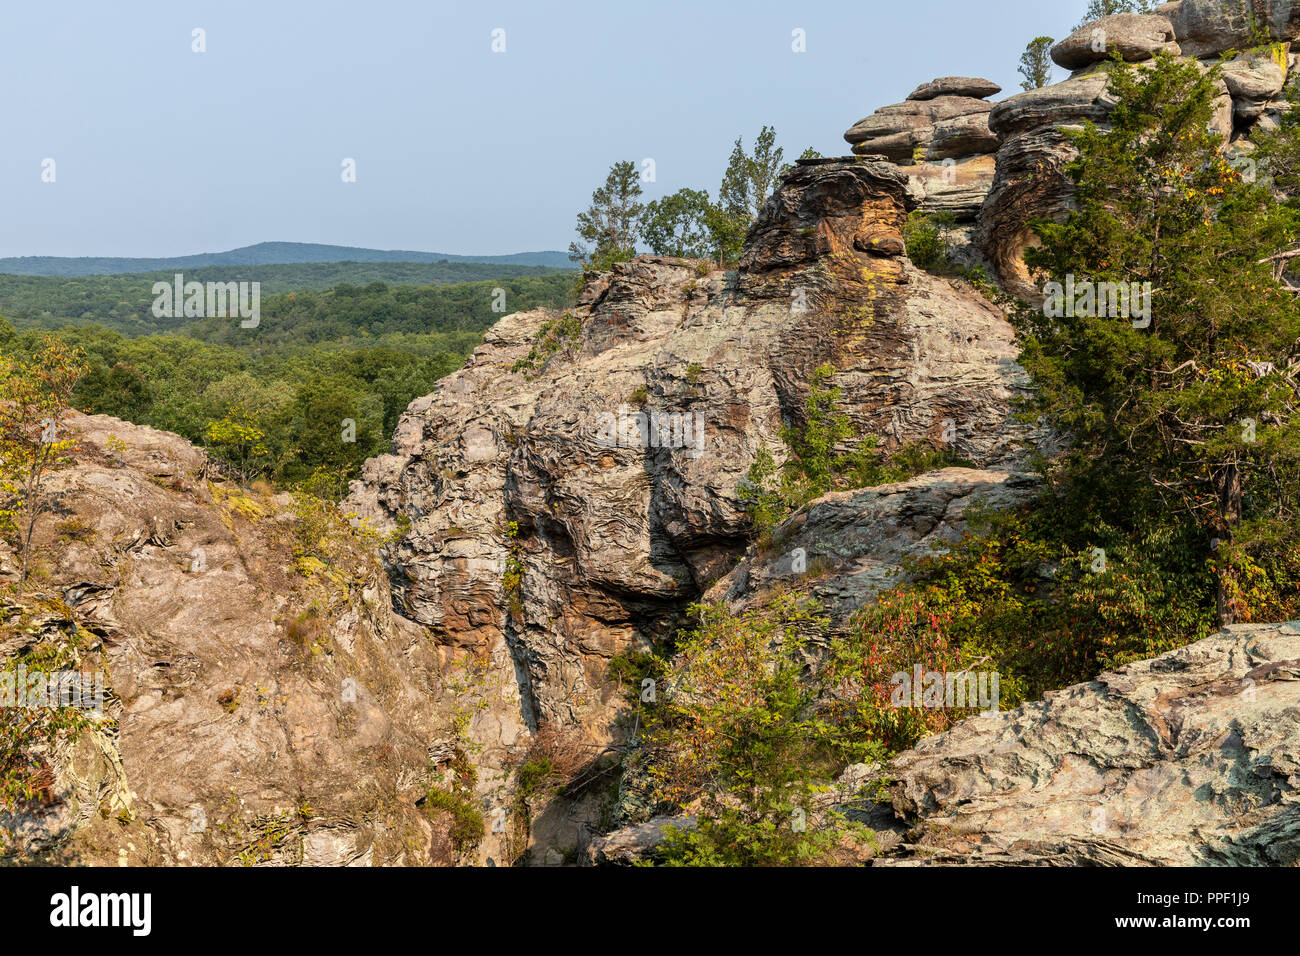 Rock Formations Scenic Landscape - Stock Image